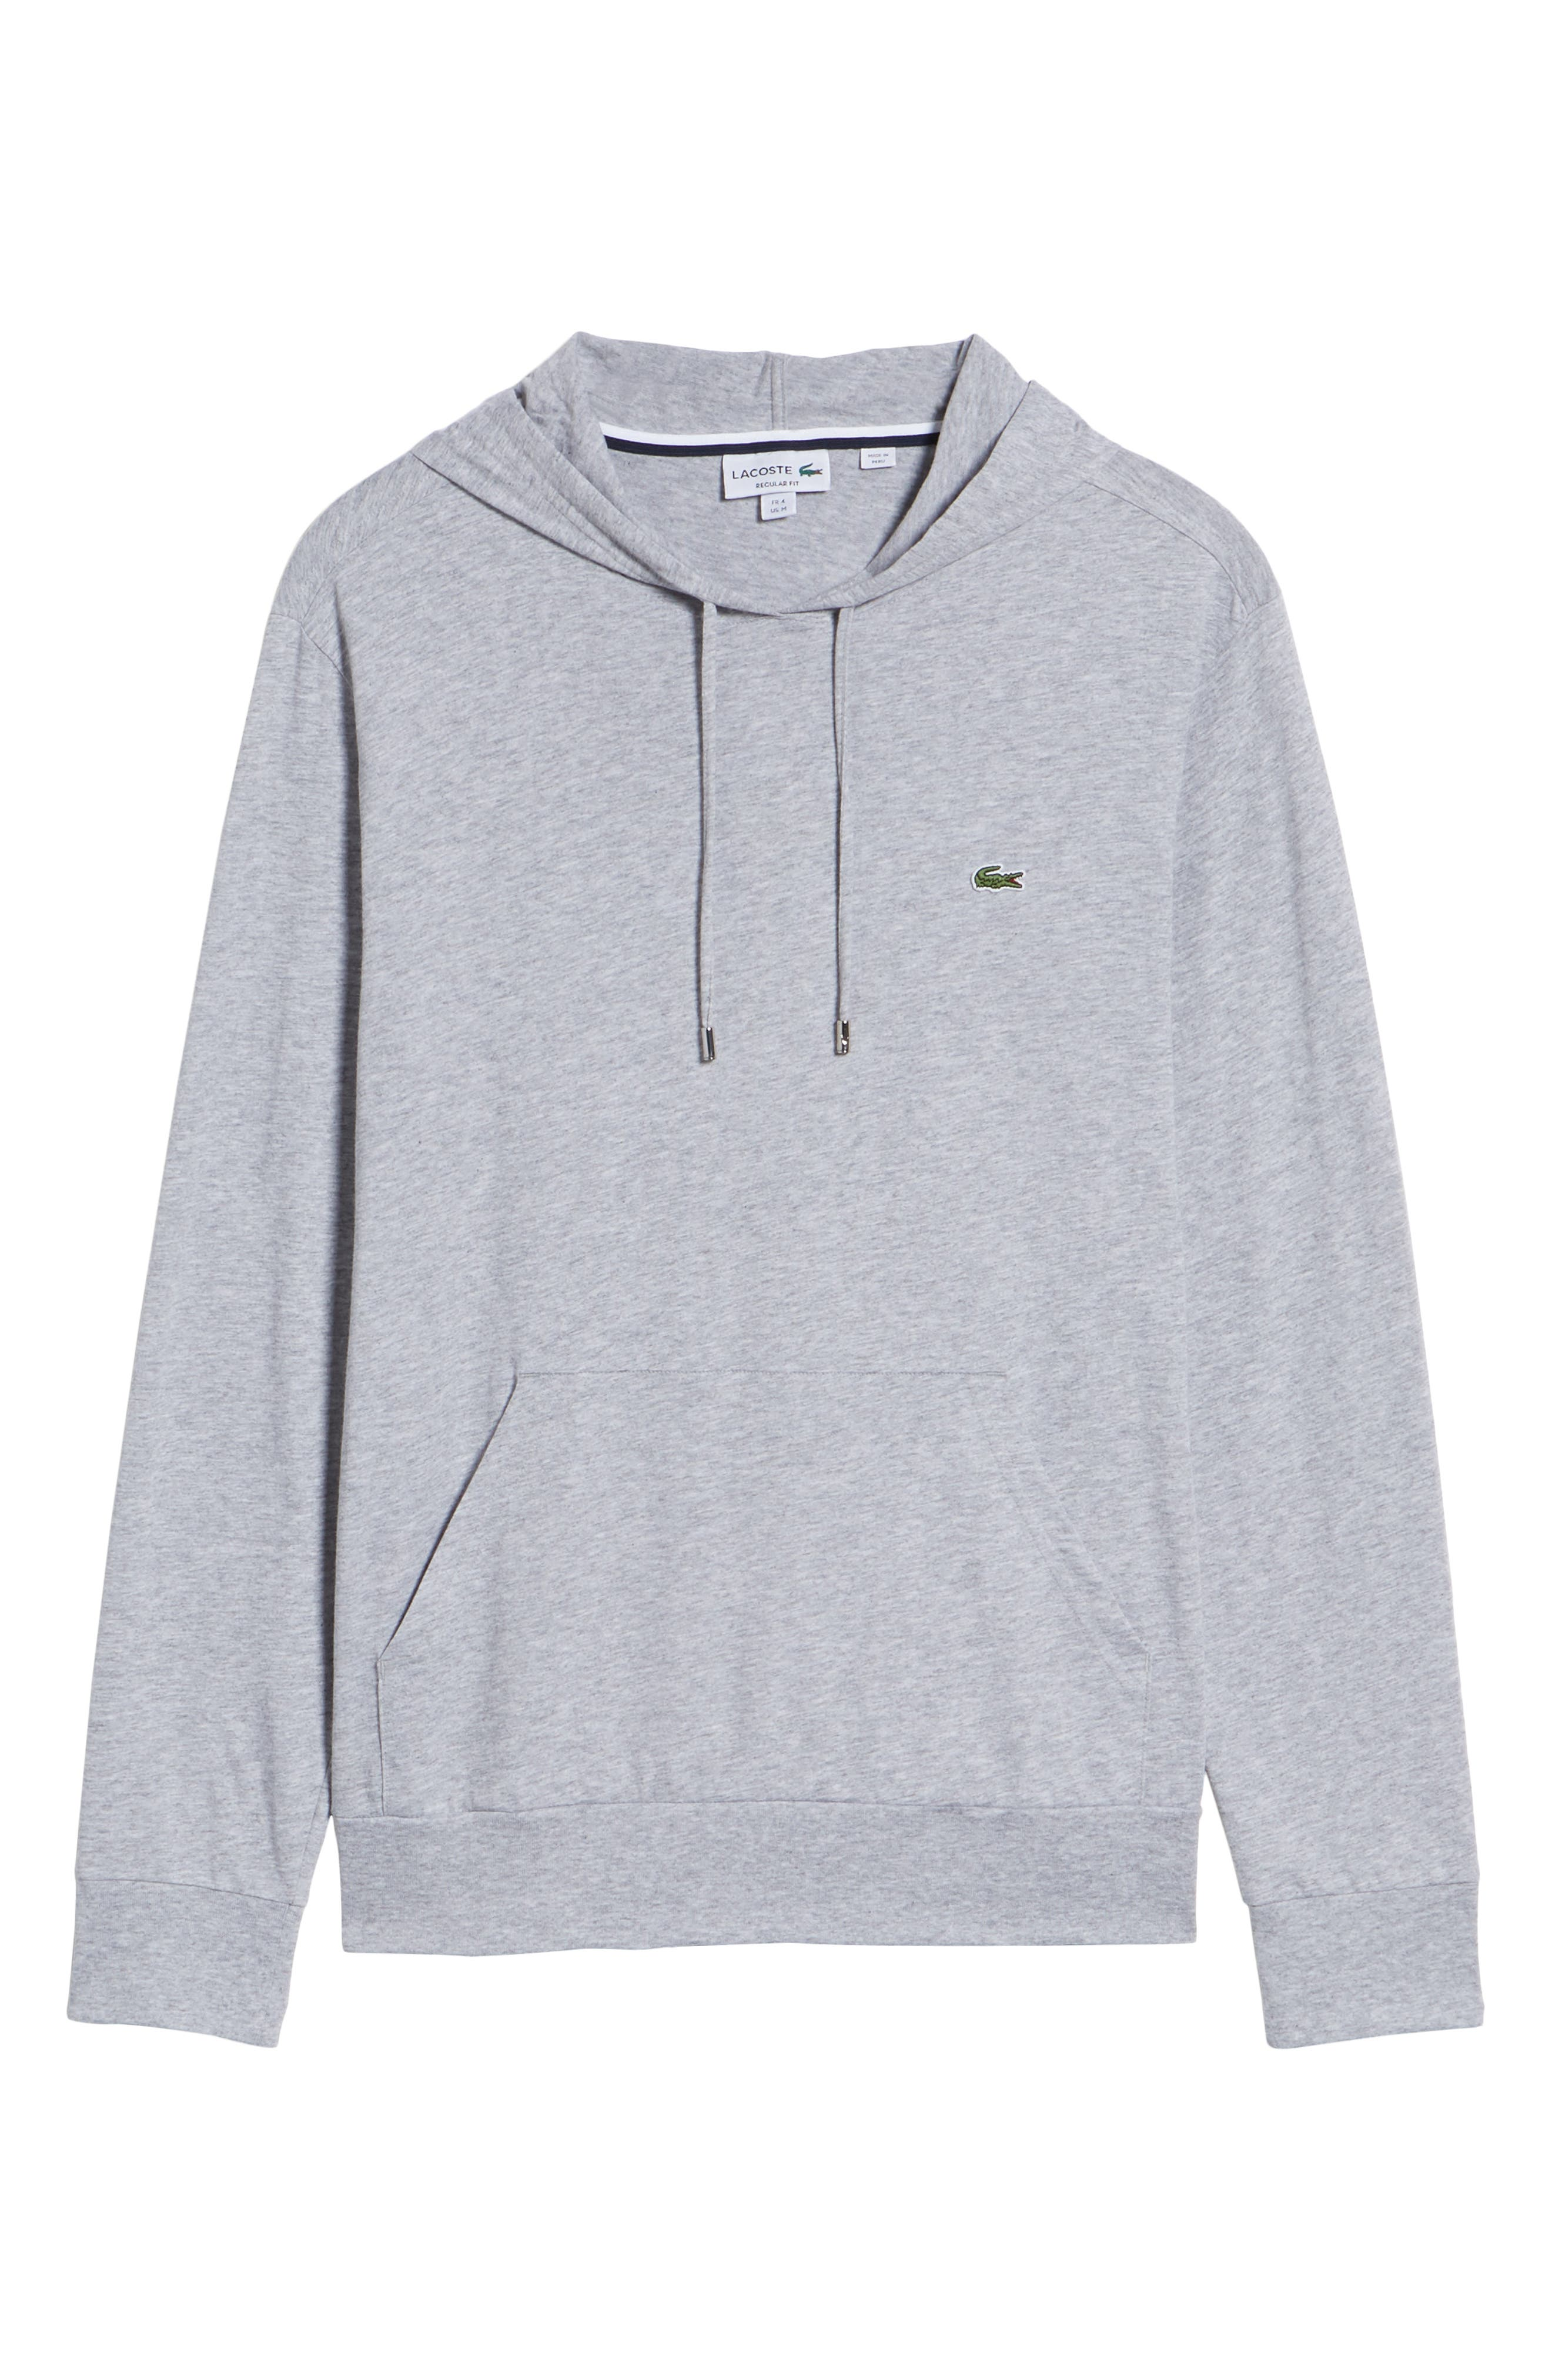 Pullover Hoodie,                             Alternate thumbnail 6, color,                             SILVER CHINE